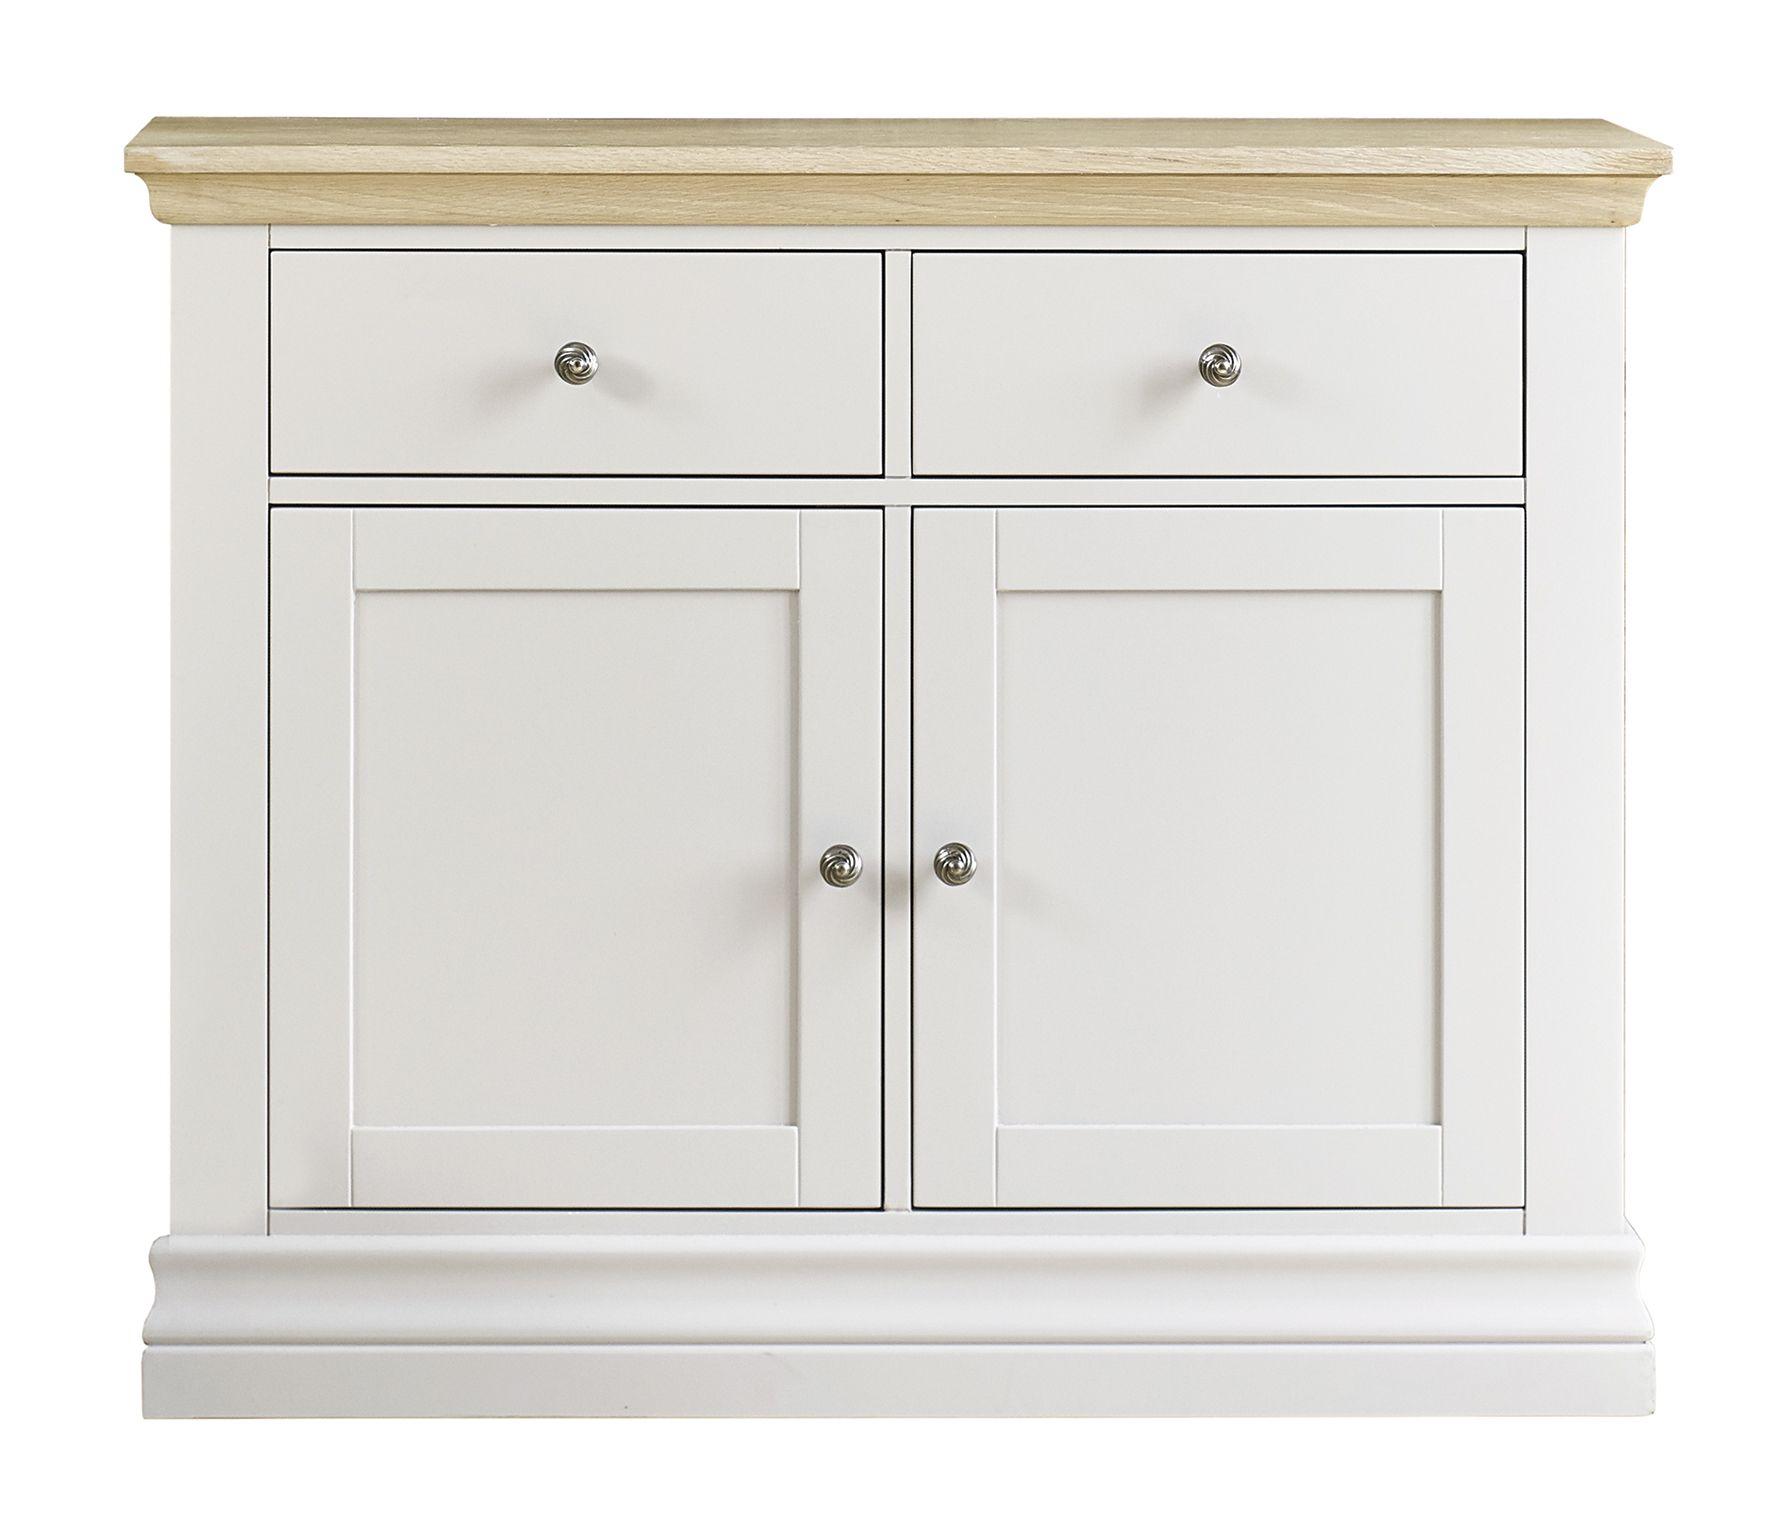 corndell annecy small sideboard hand painted in a clean crisp white with limed oak top. Black Bedroom Furniture Sets. Home Design Ideas